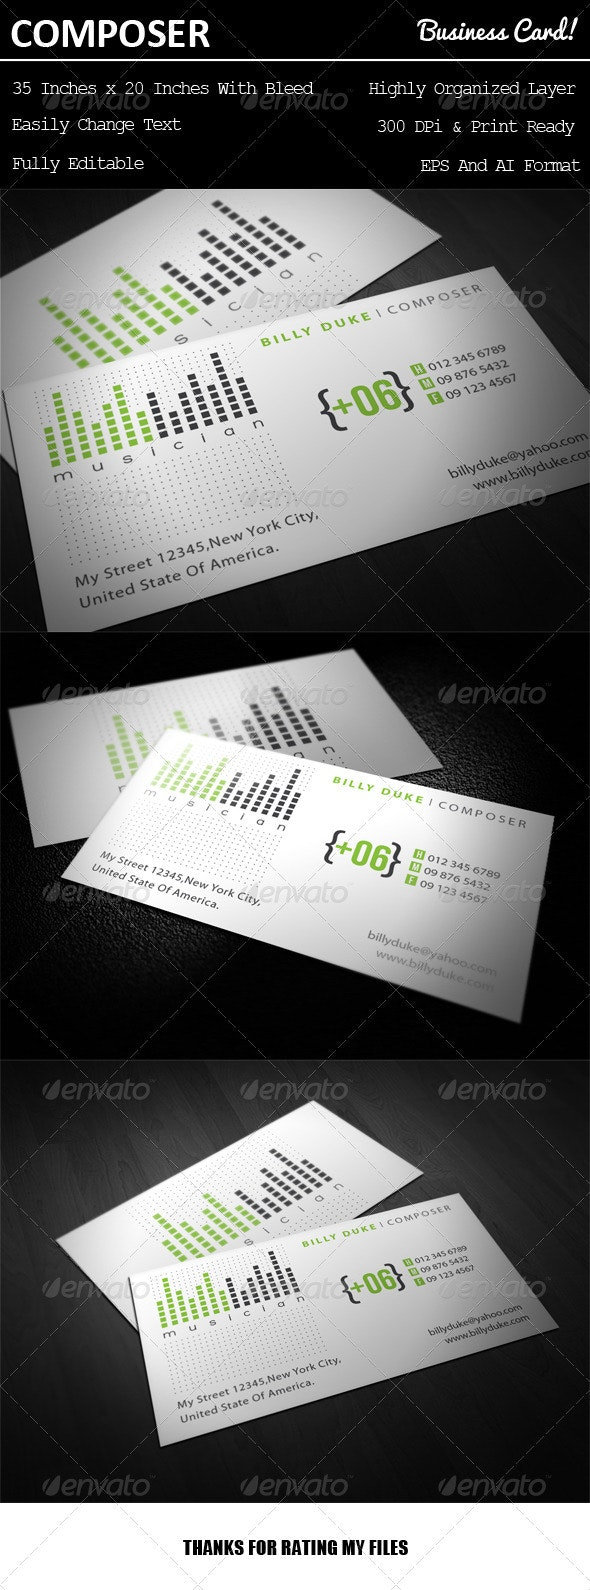 Composer Business Card - Industry Specific Business Cards